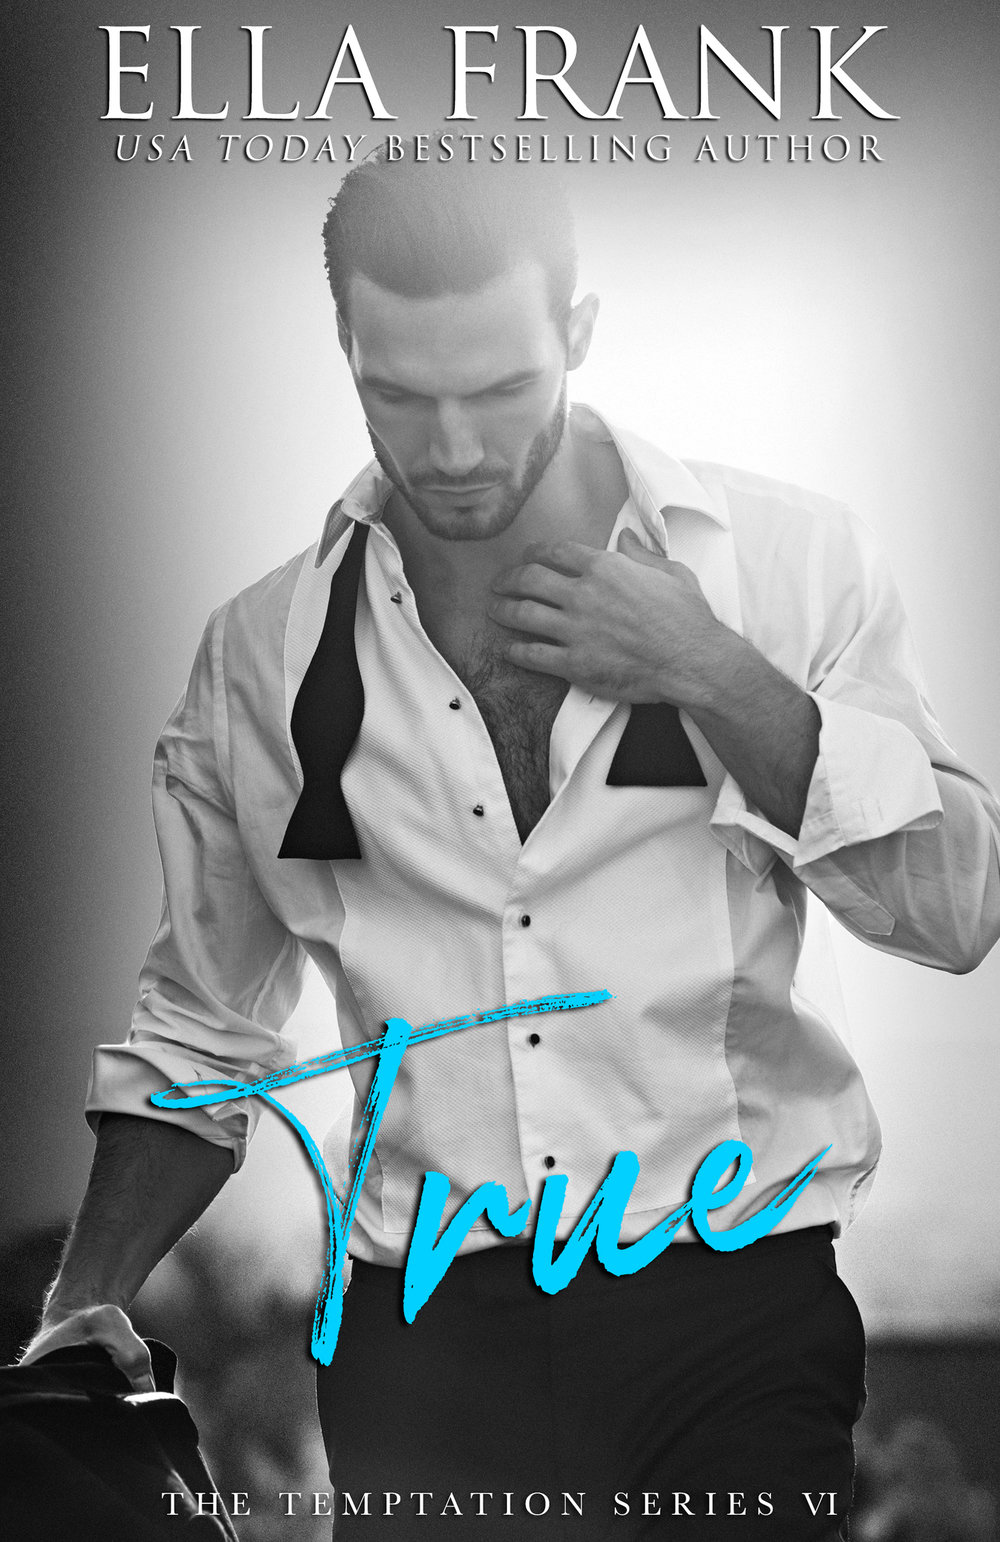 Synopsis:    True - adjective: That which is accurate or exact.    I dare you to try.    I think you're my truth.    Terrify me.    Marry me.    Marry me.    Marry me...    Four years ago, Logan Mitchell walked into Tate's life and challenged him to see it differently.    He dared Tate to try a kiss, when normally he wouldn't have.    He begged him to take a chance, when he probably shouldn't have.    But most importantly, he asked Tate to trust that he would love him, and he did. From that moment on, Tate realized exactly what his life had been missing—Logan.    Happily-ever-afters come in many different forms. But for Tate Morrison, there's only one ending he wants. The one where the guy marries the guy and true love conquers all.    Now all he has to do is tell Logan.    Join Logan and Tate as they finally realize what the rest of us knew all along. That they belong together for better or worse—always.